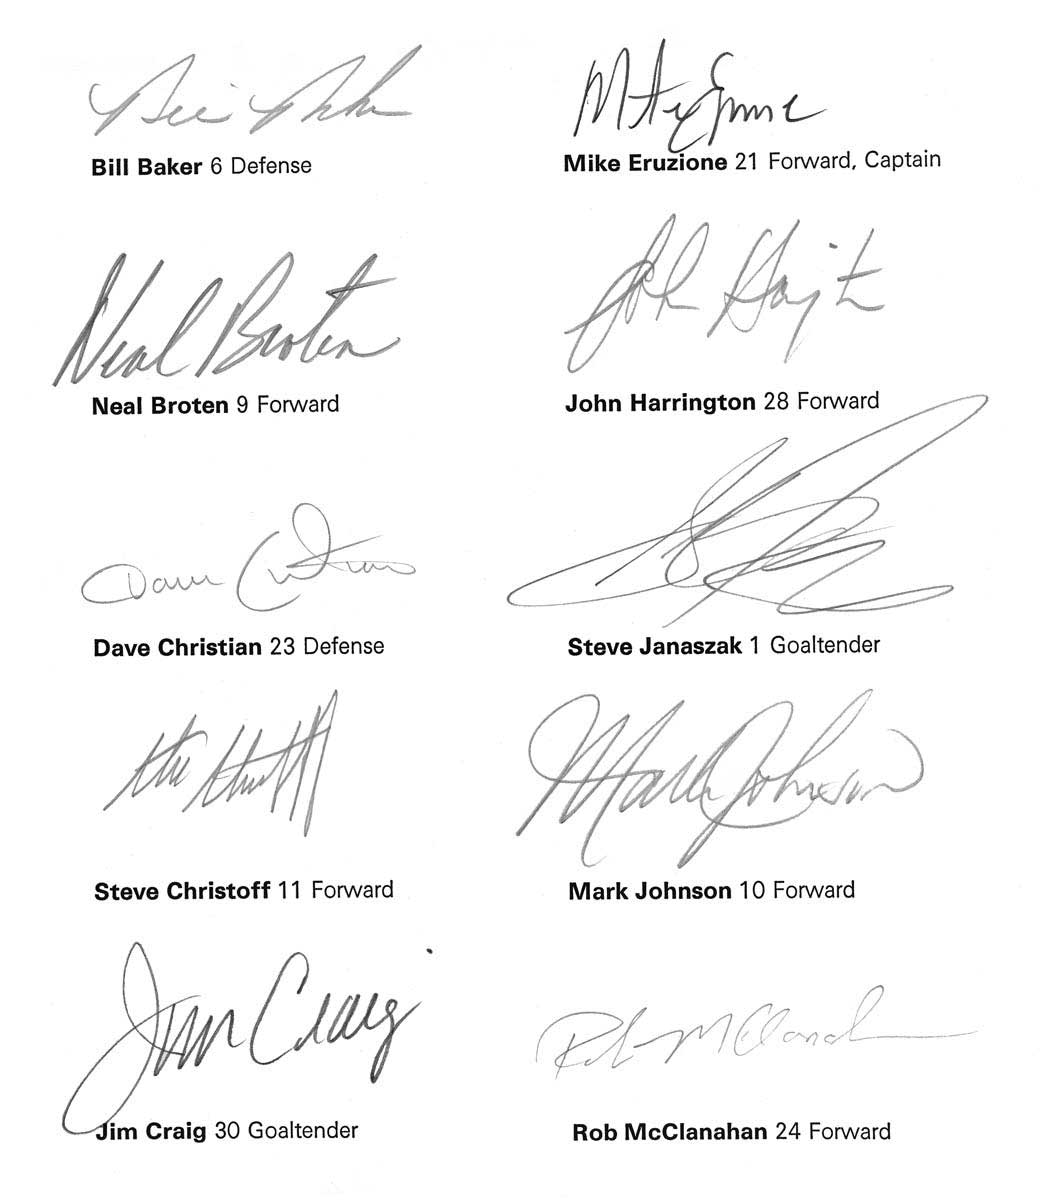 The 1980 US Olympic Hockey Team signatures